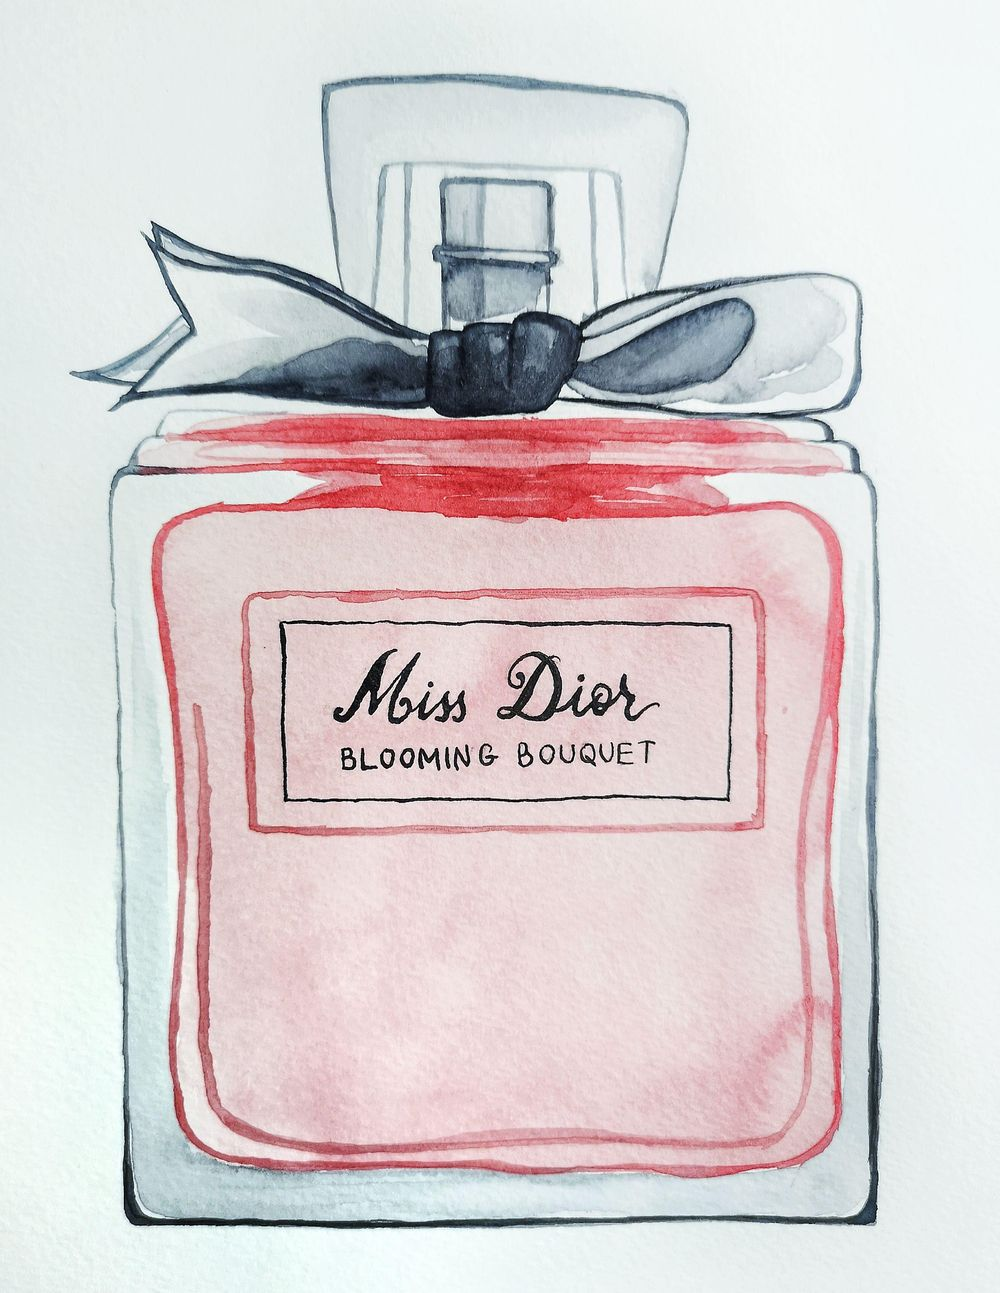 Perfume Bottles - image 1 - student project